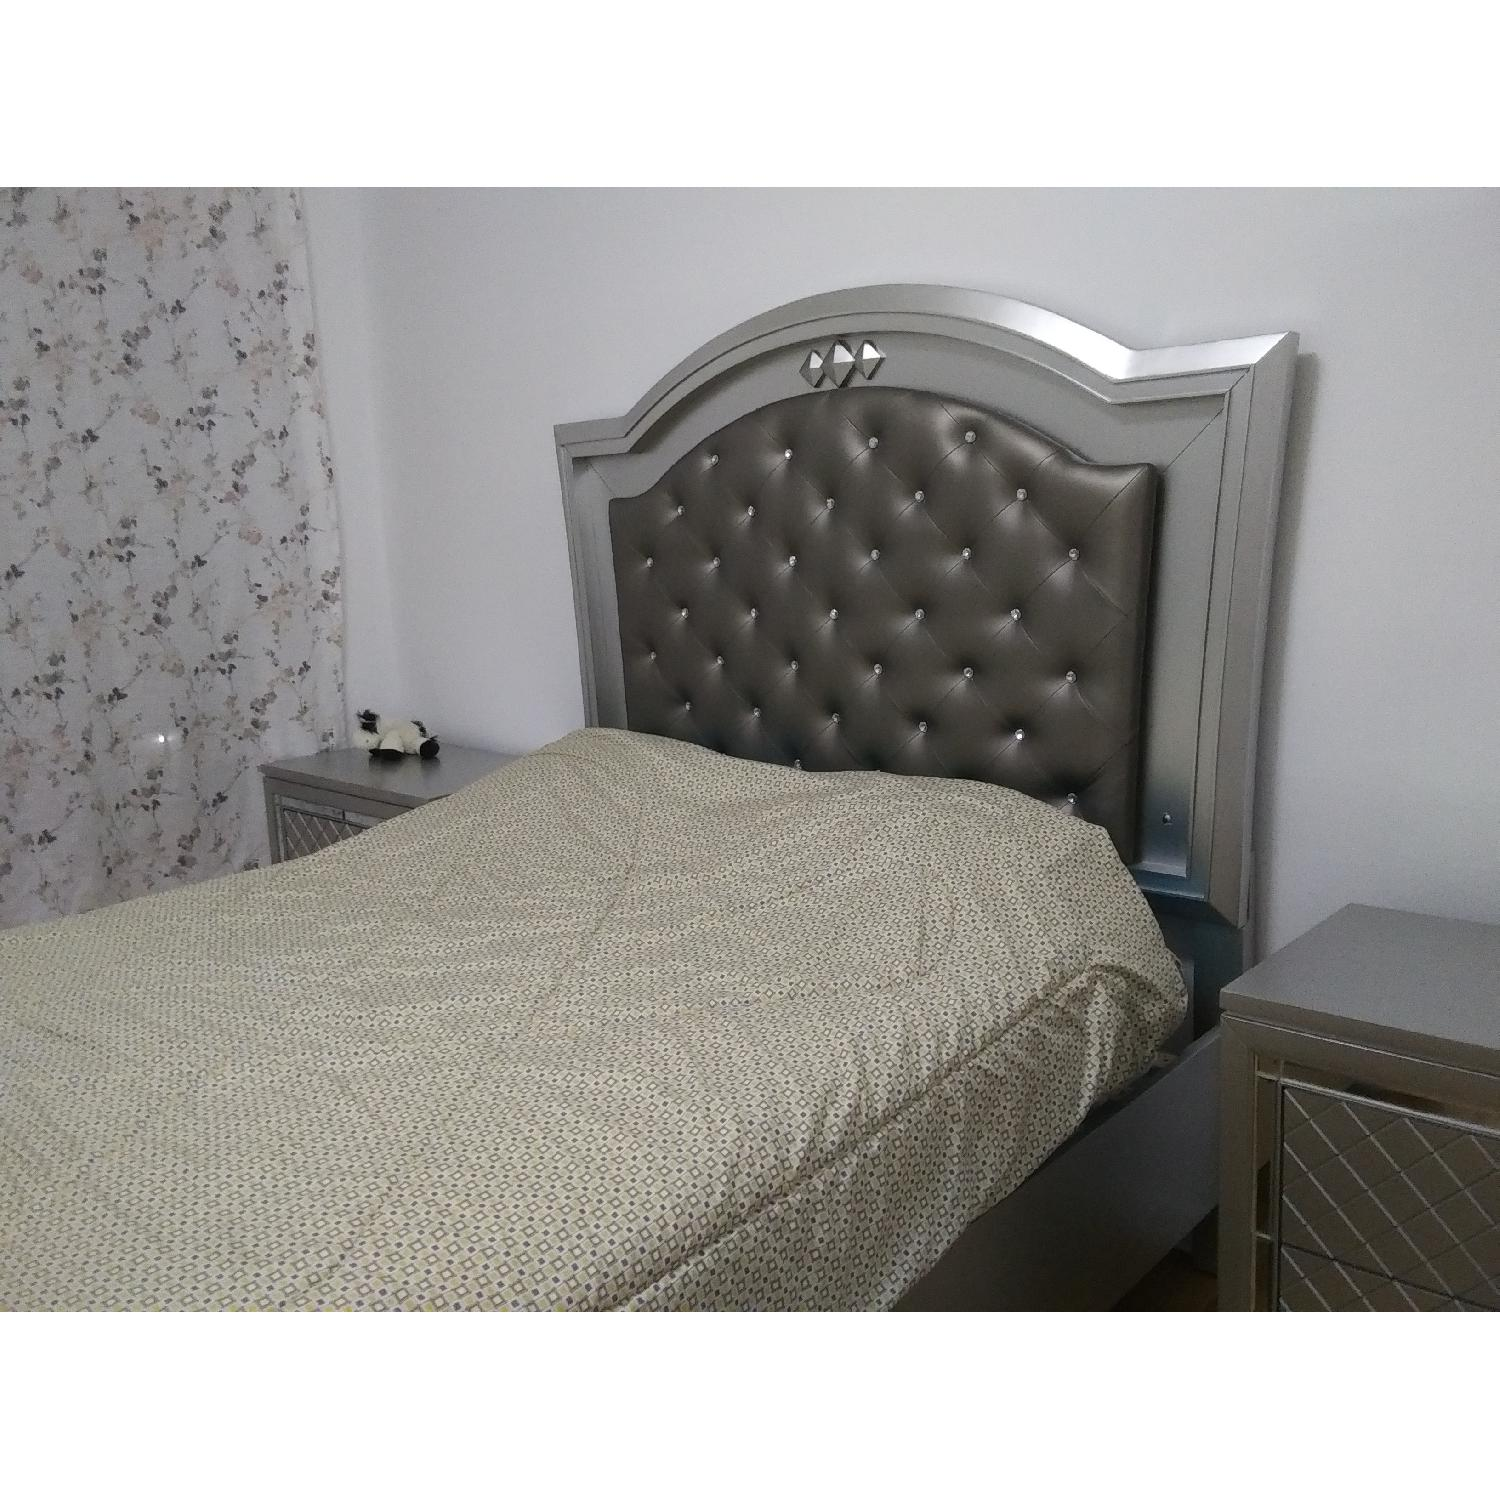 Silver Queen Size Bed w/ Storage & Lights - image-3